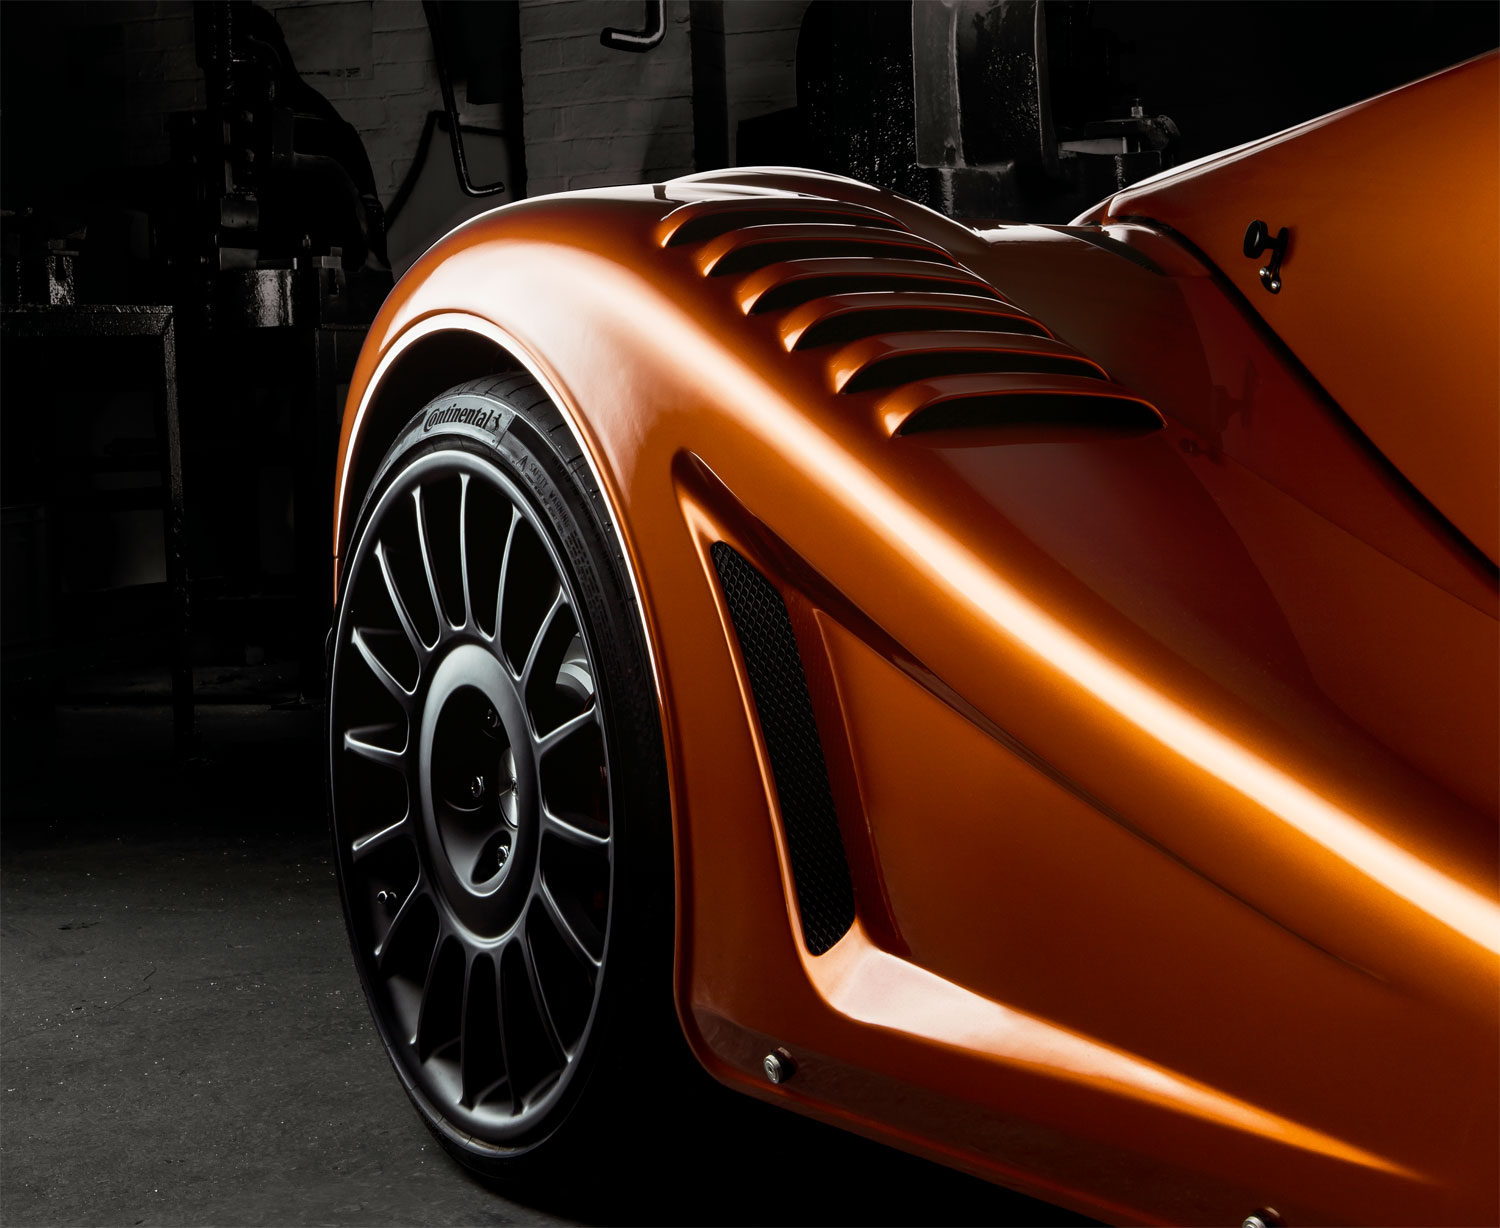 Morgan's 170 mph Aero GT - Classic Looks Coupled with a Lot of Punch 3